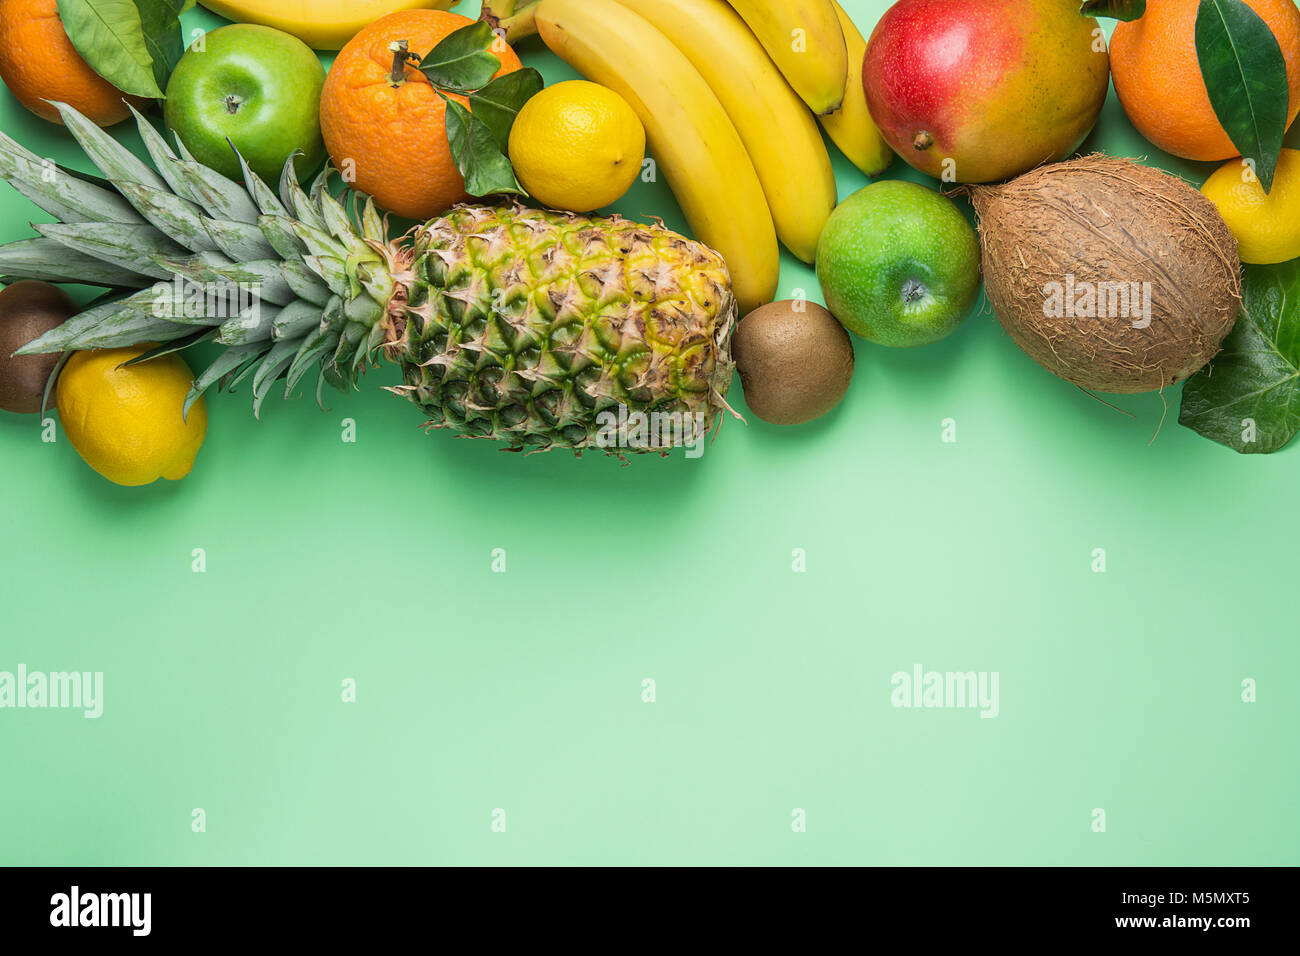 Variety Of Different Tropical And Summer Fruits Pineapple Mango Stock Photo Alamy